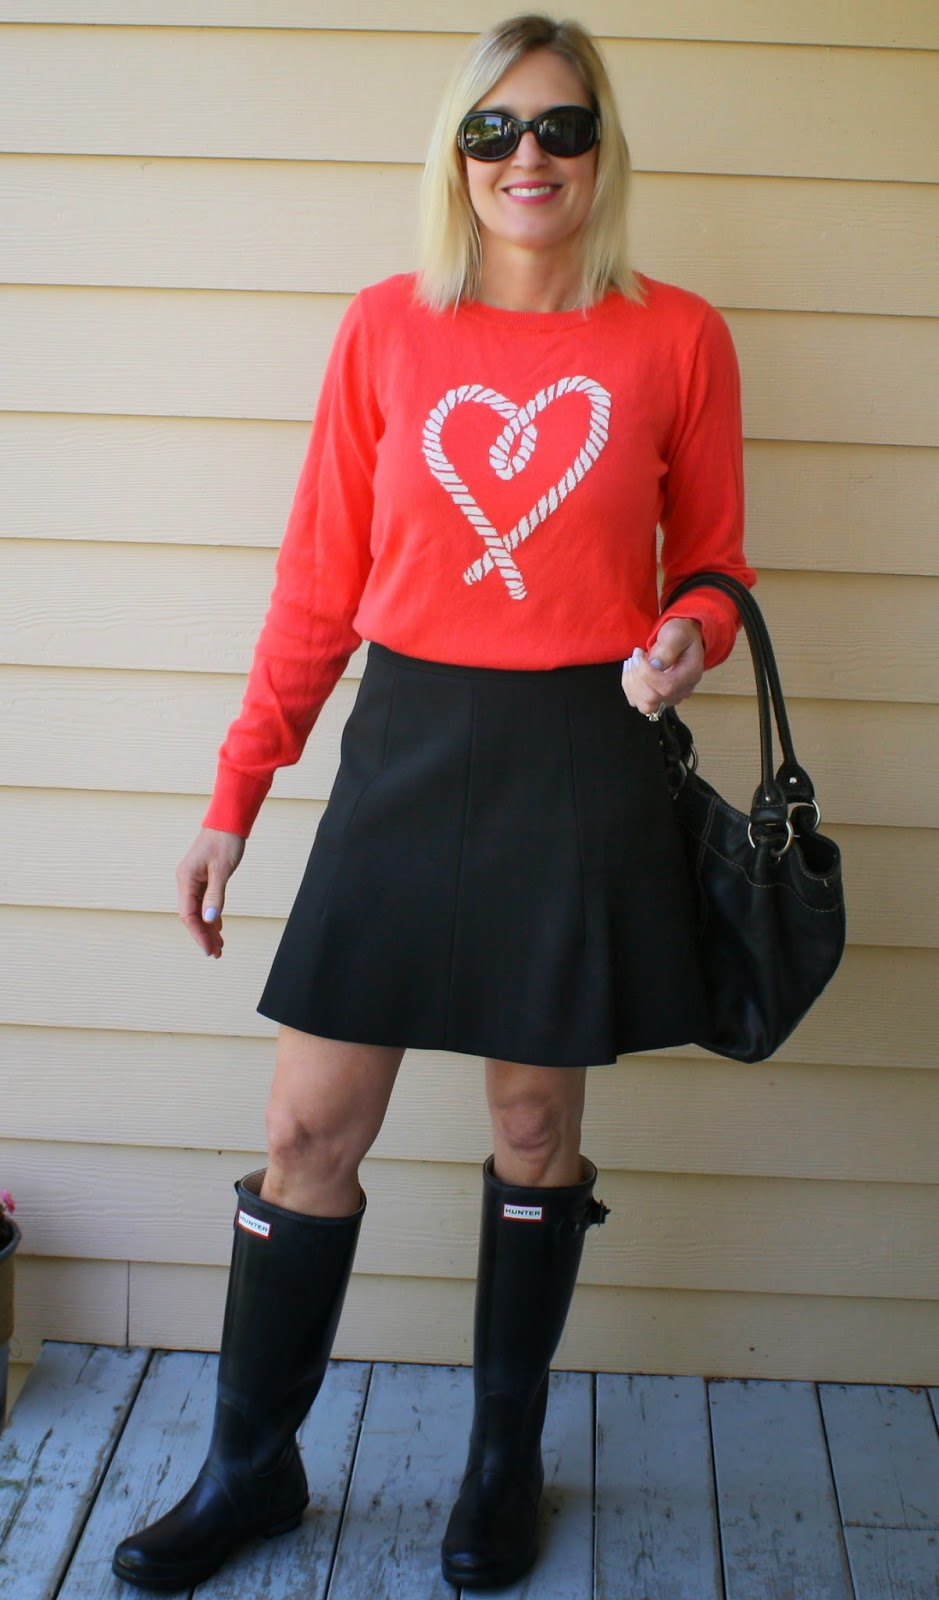 fd48e2a53b2 This look is totally me. I don t have red Hunters or a striped skirt but I  did have the exact sweater in the coral color. I swapped out the stripes  and the ...